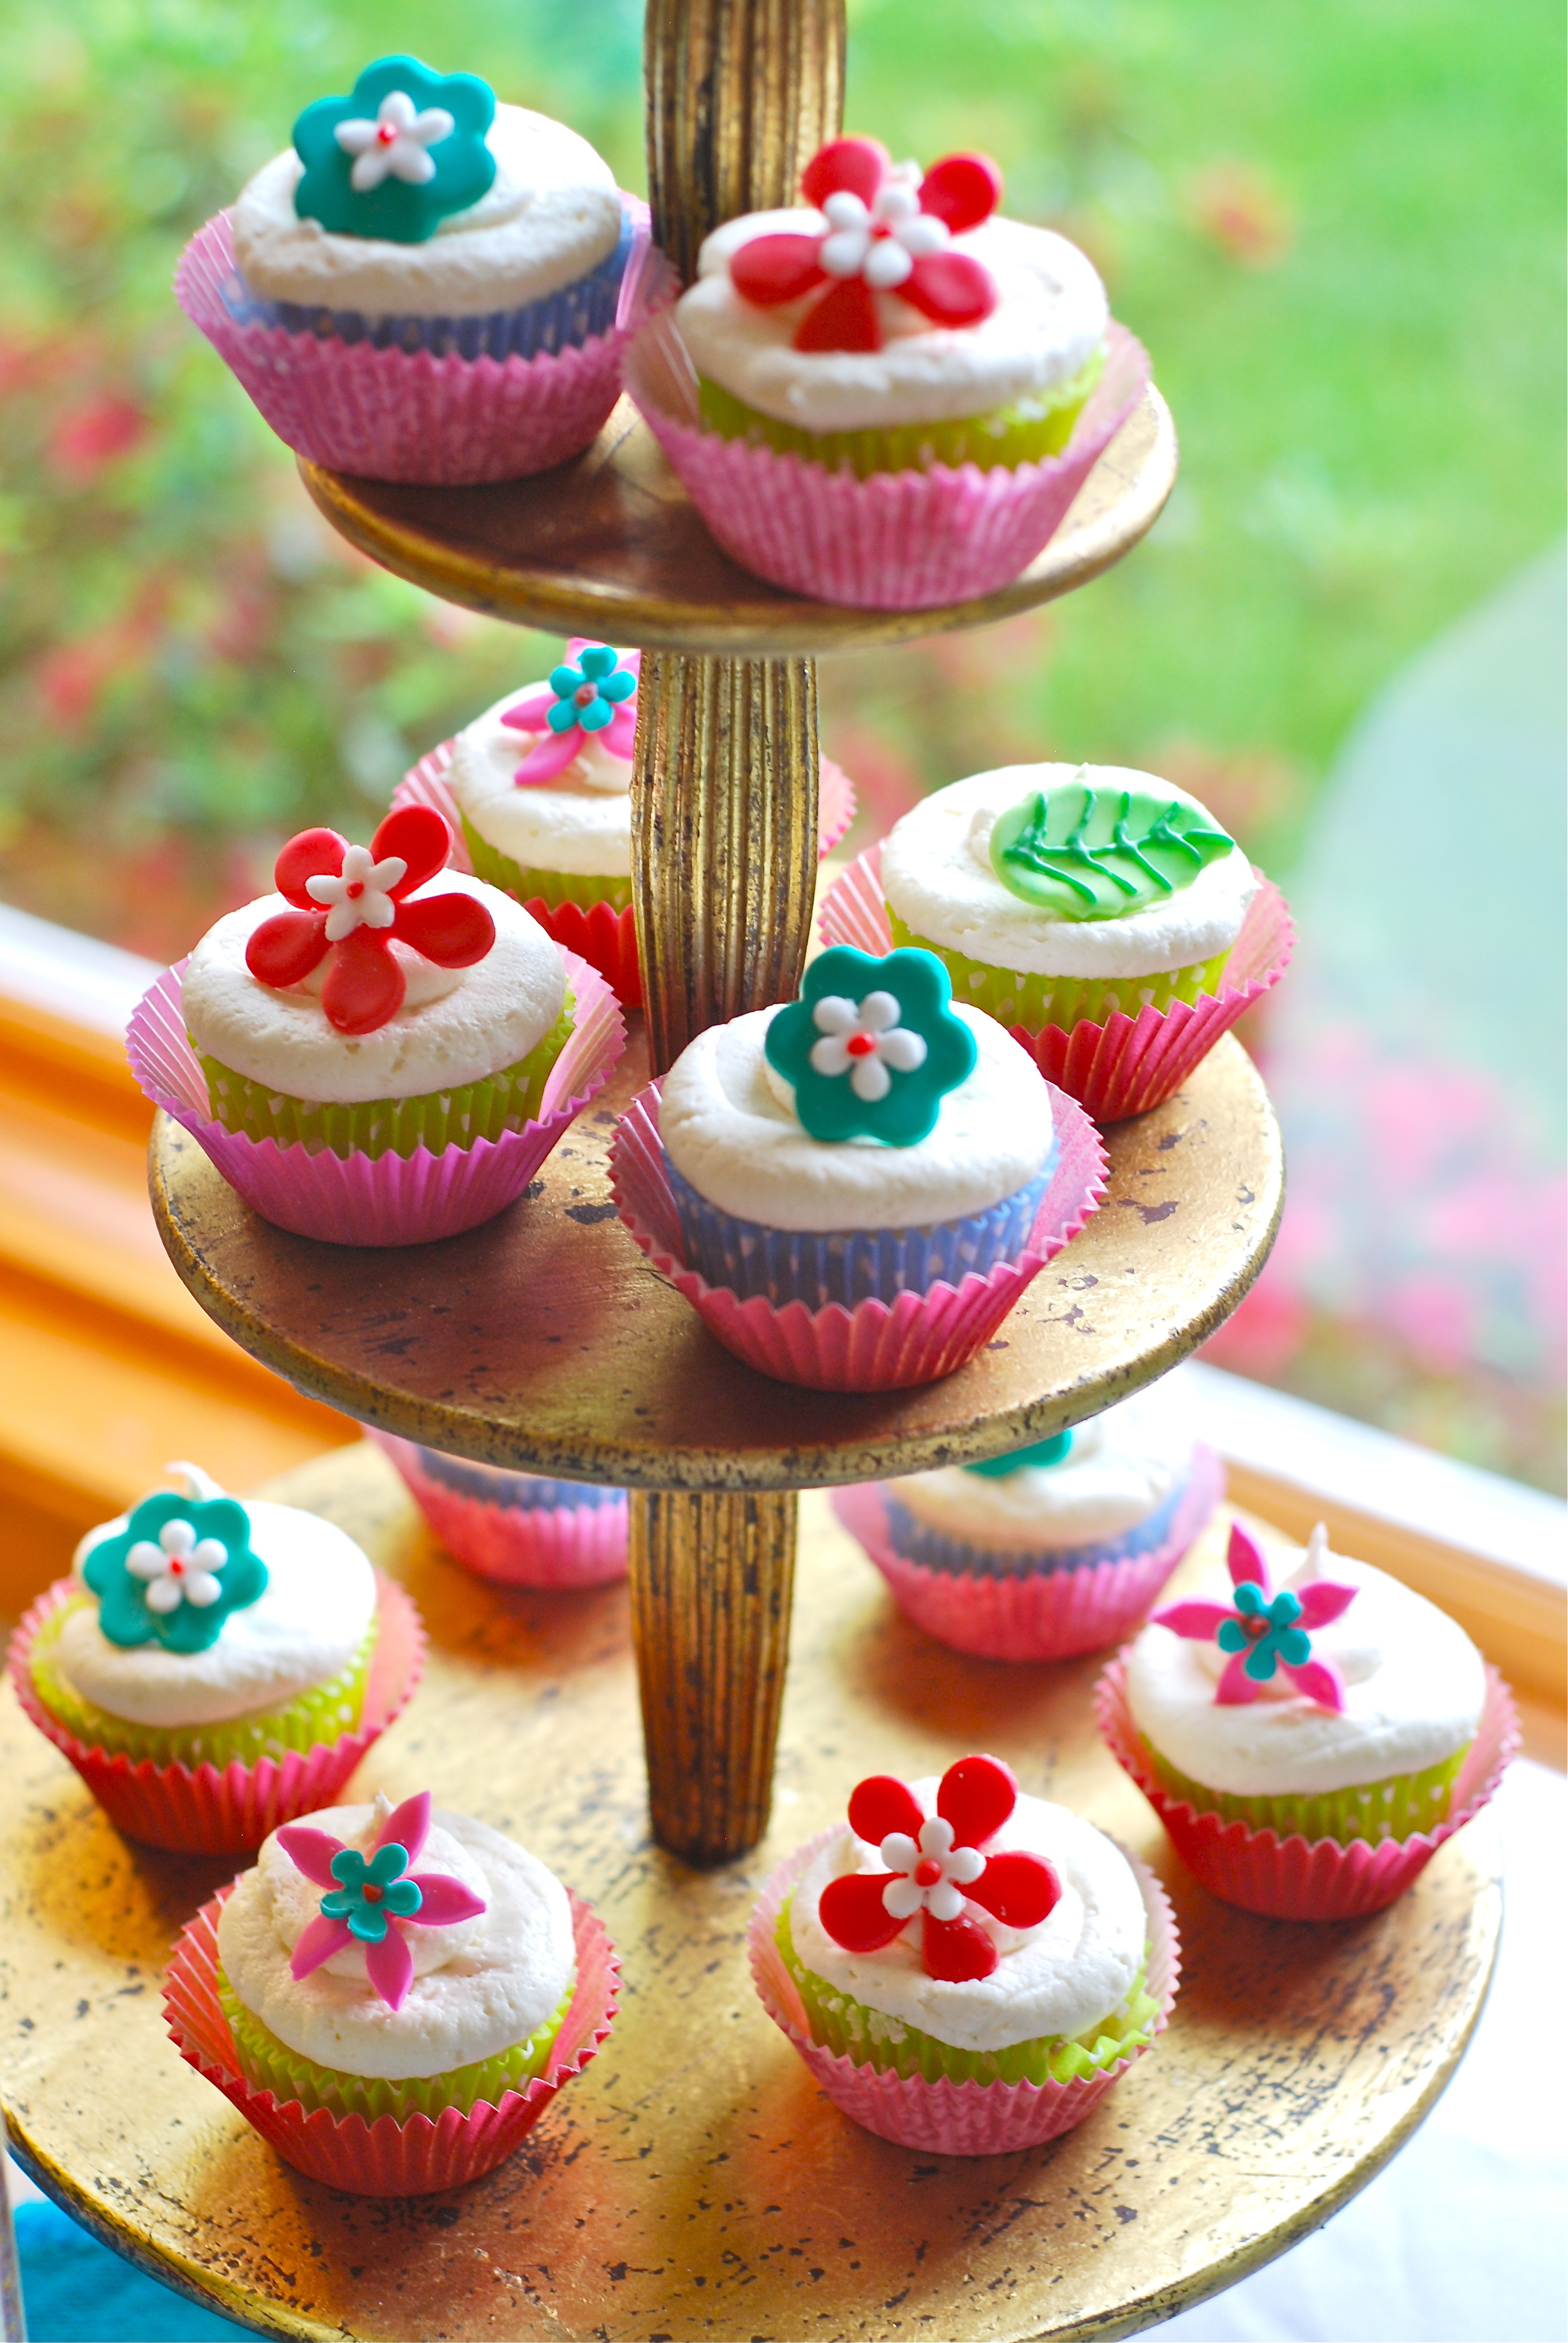 Sweet and festive cupcakes